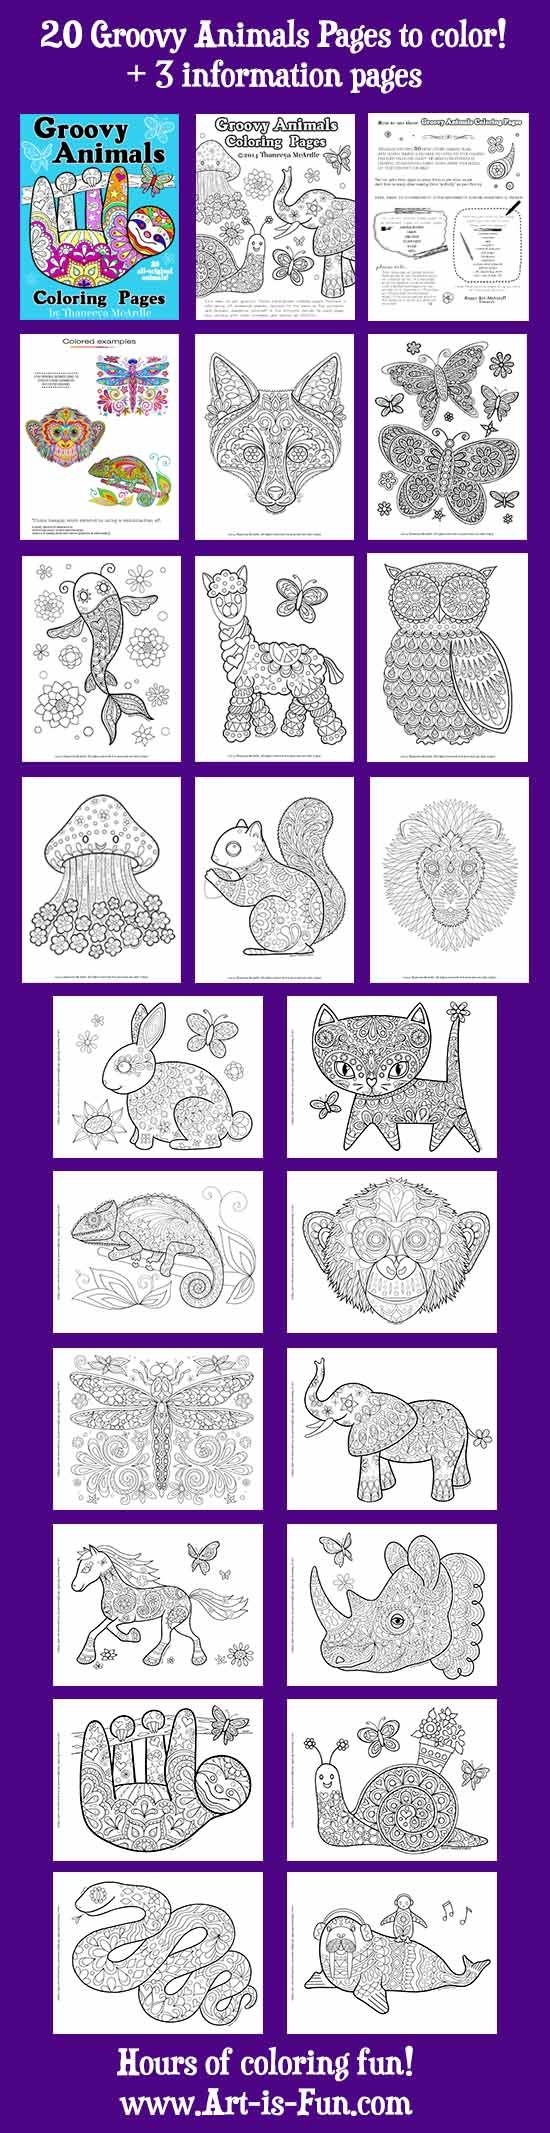 Printable Groovy Animals Coloring Pages by Thaneeya McArdle